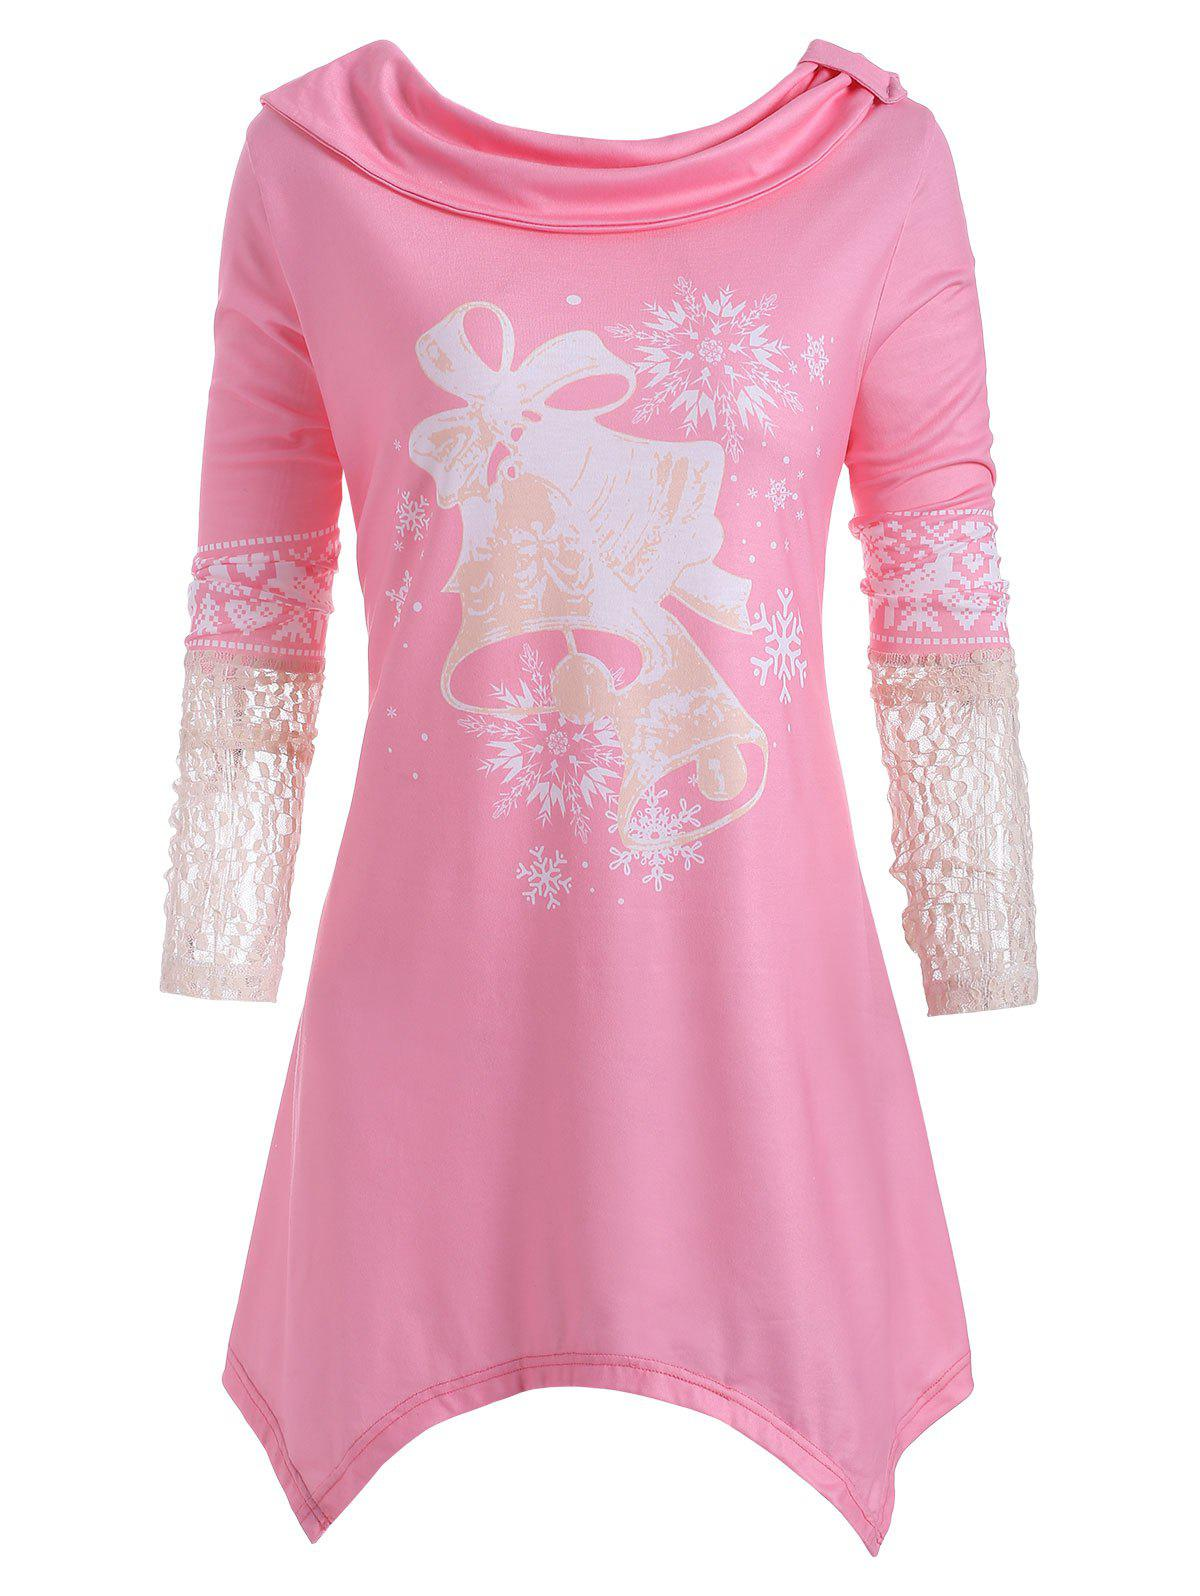 Shops Lace Panel Small Bell Snowflake Elk Christmas Plus Size Top